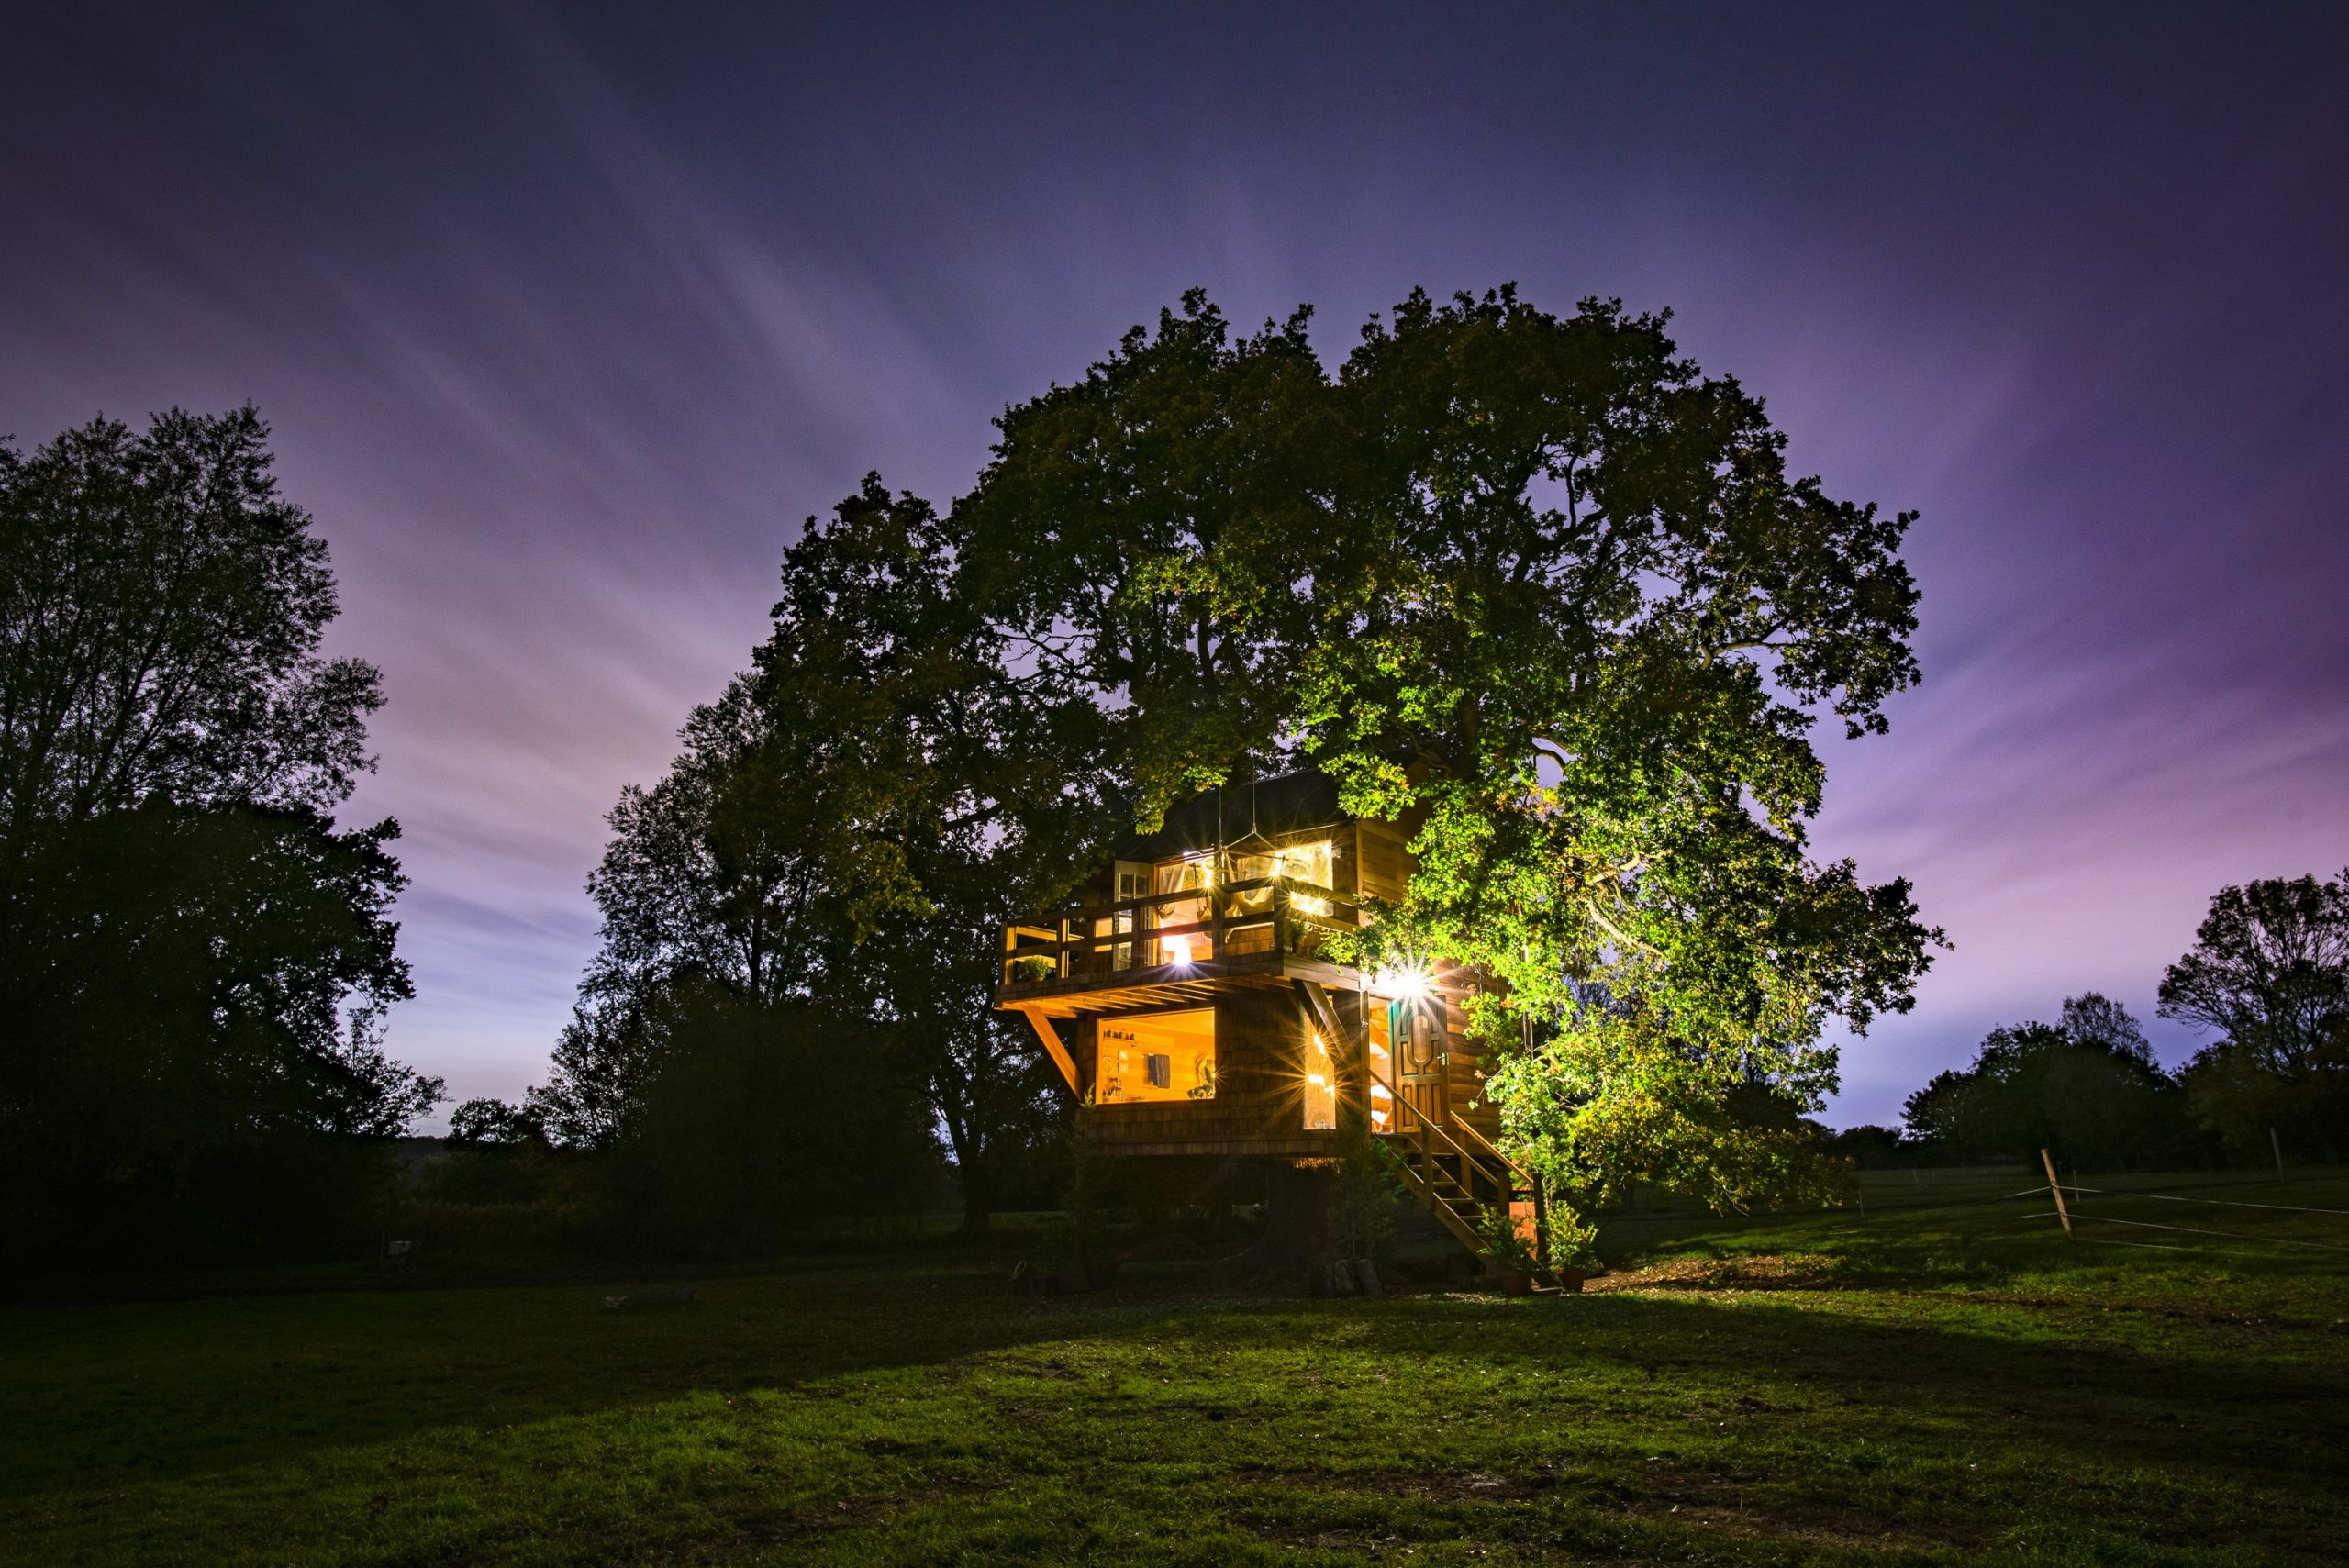 Nighttime exterior of The Old Oak at Colemans Farm